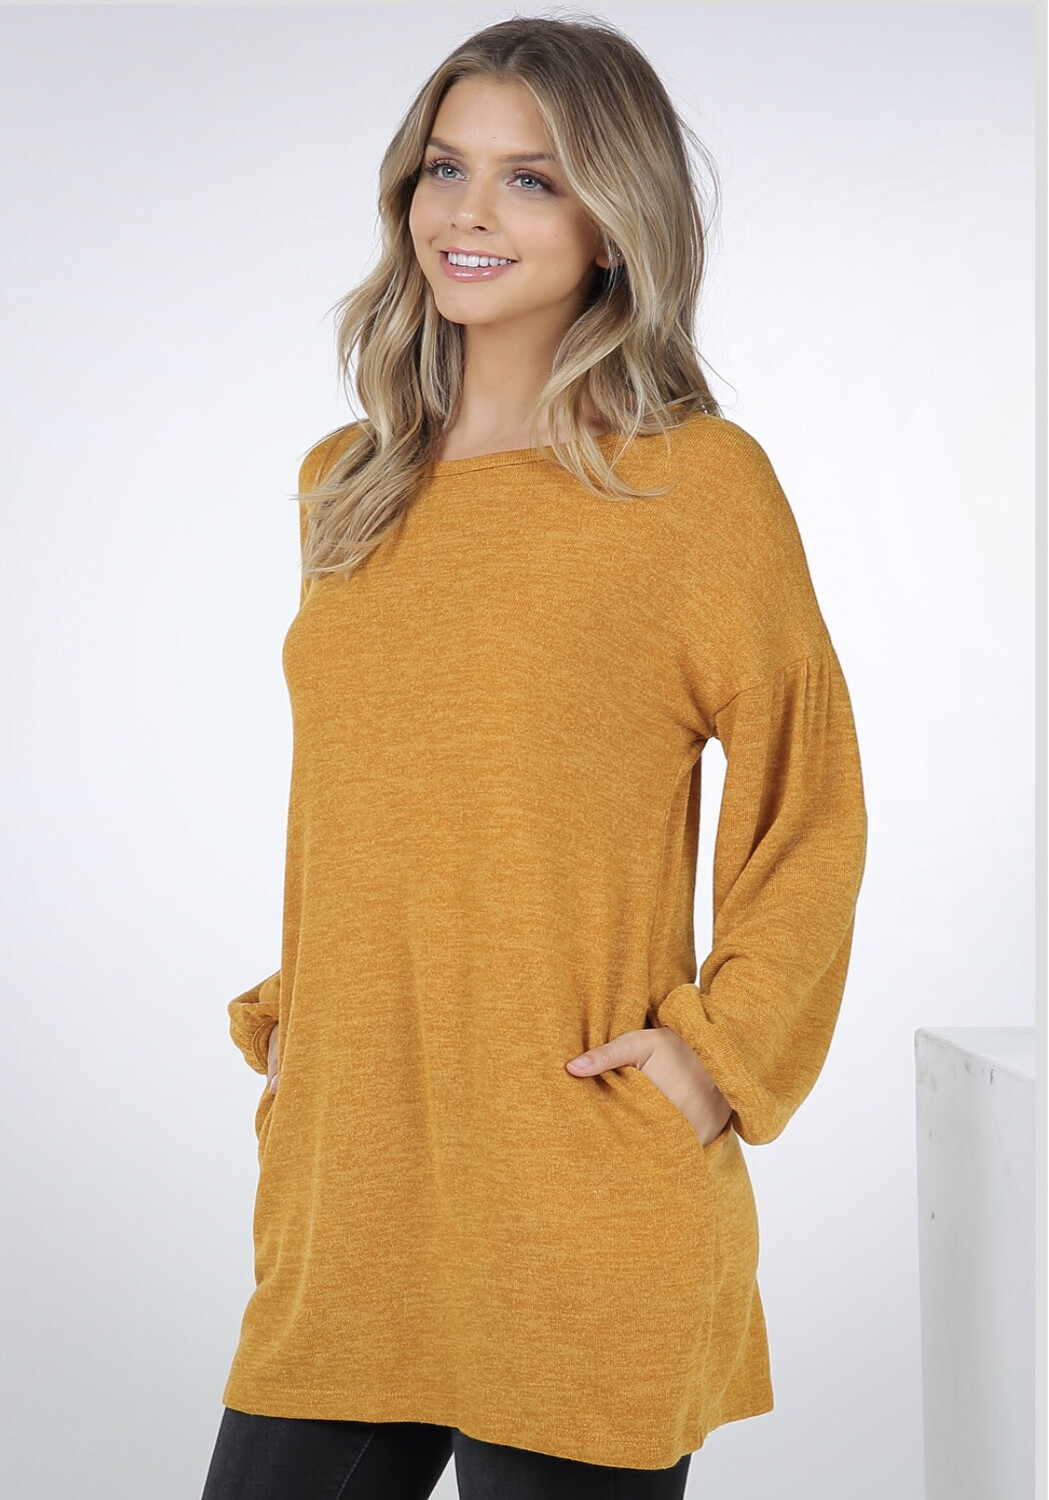 Top Poof Sleeve Sweater Fall Dark Yellow